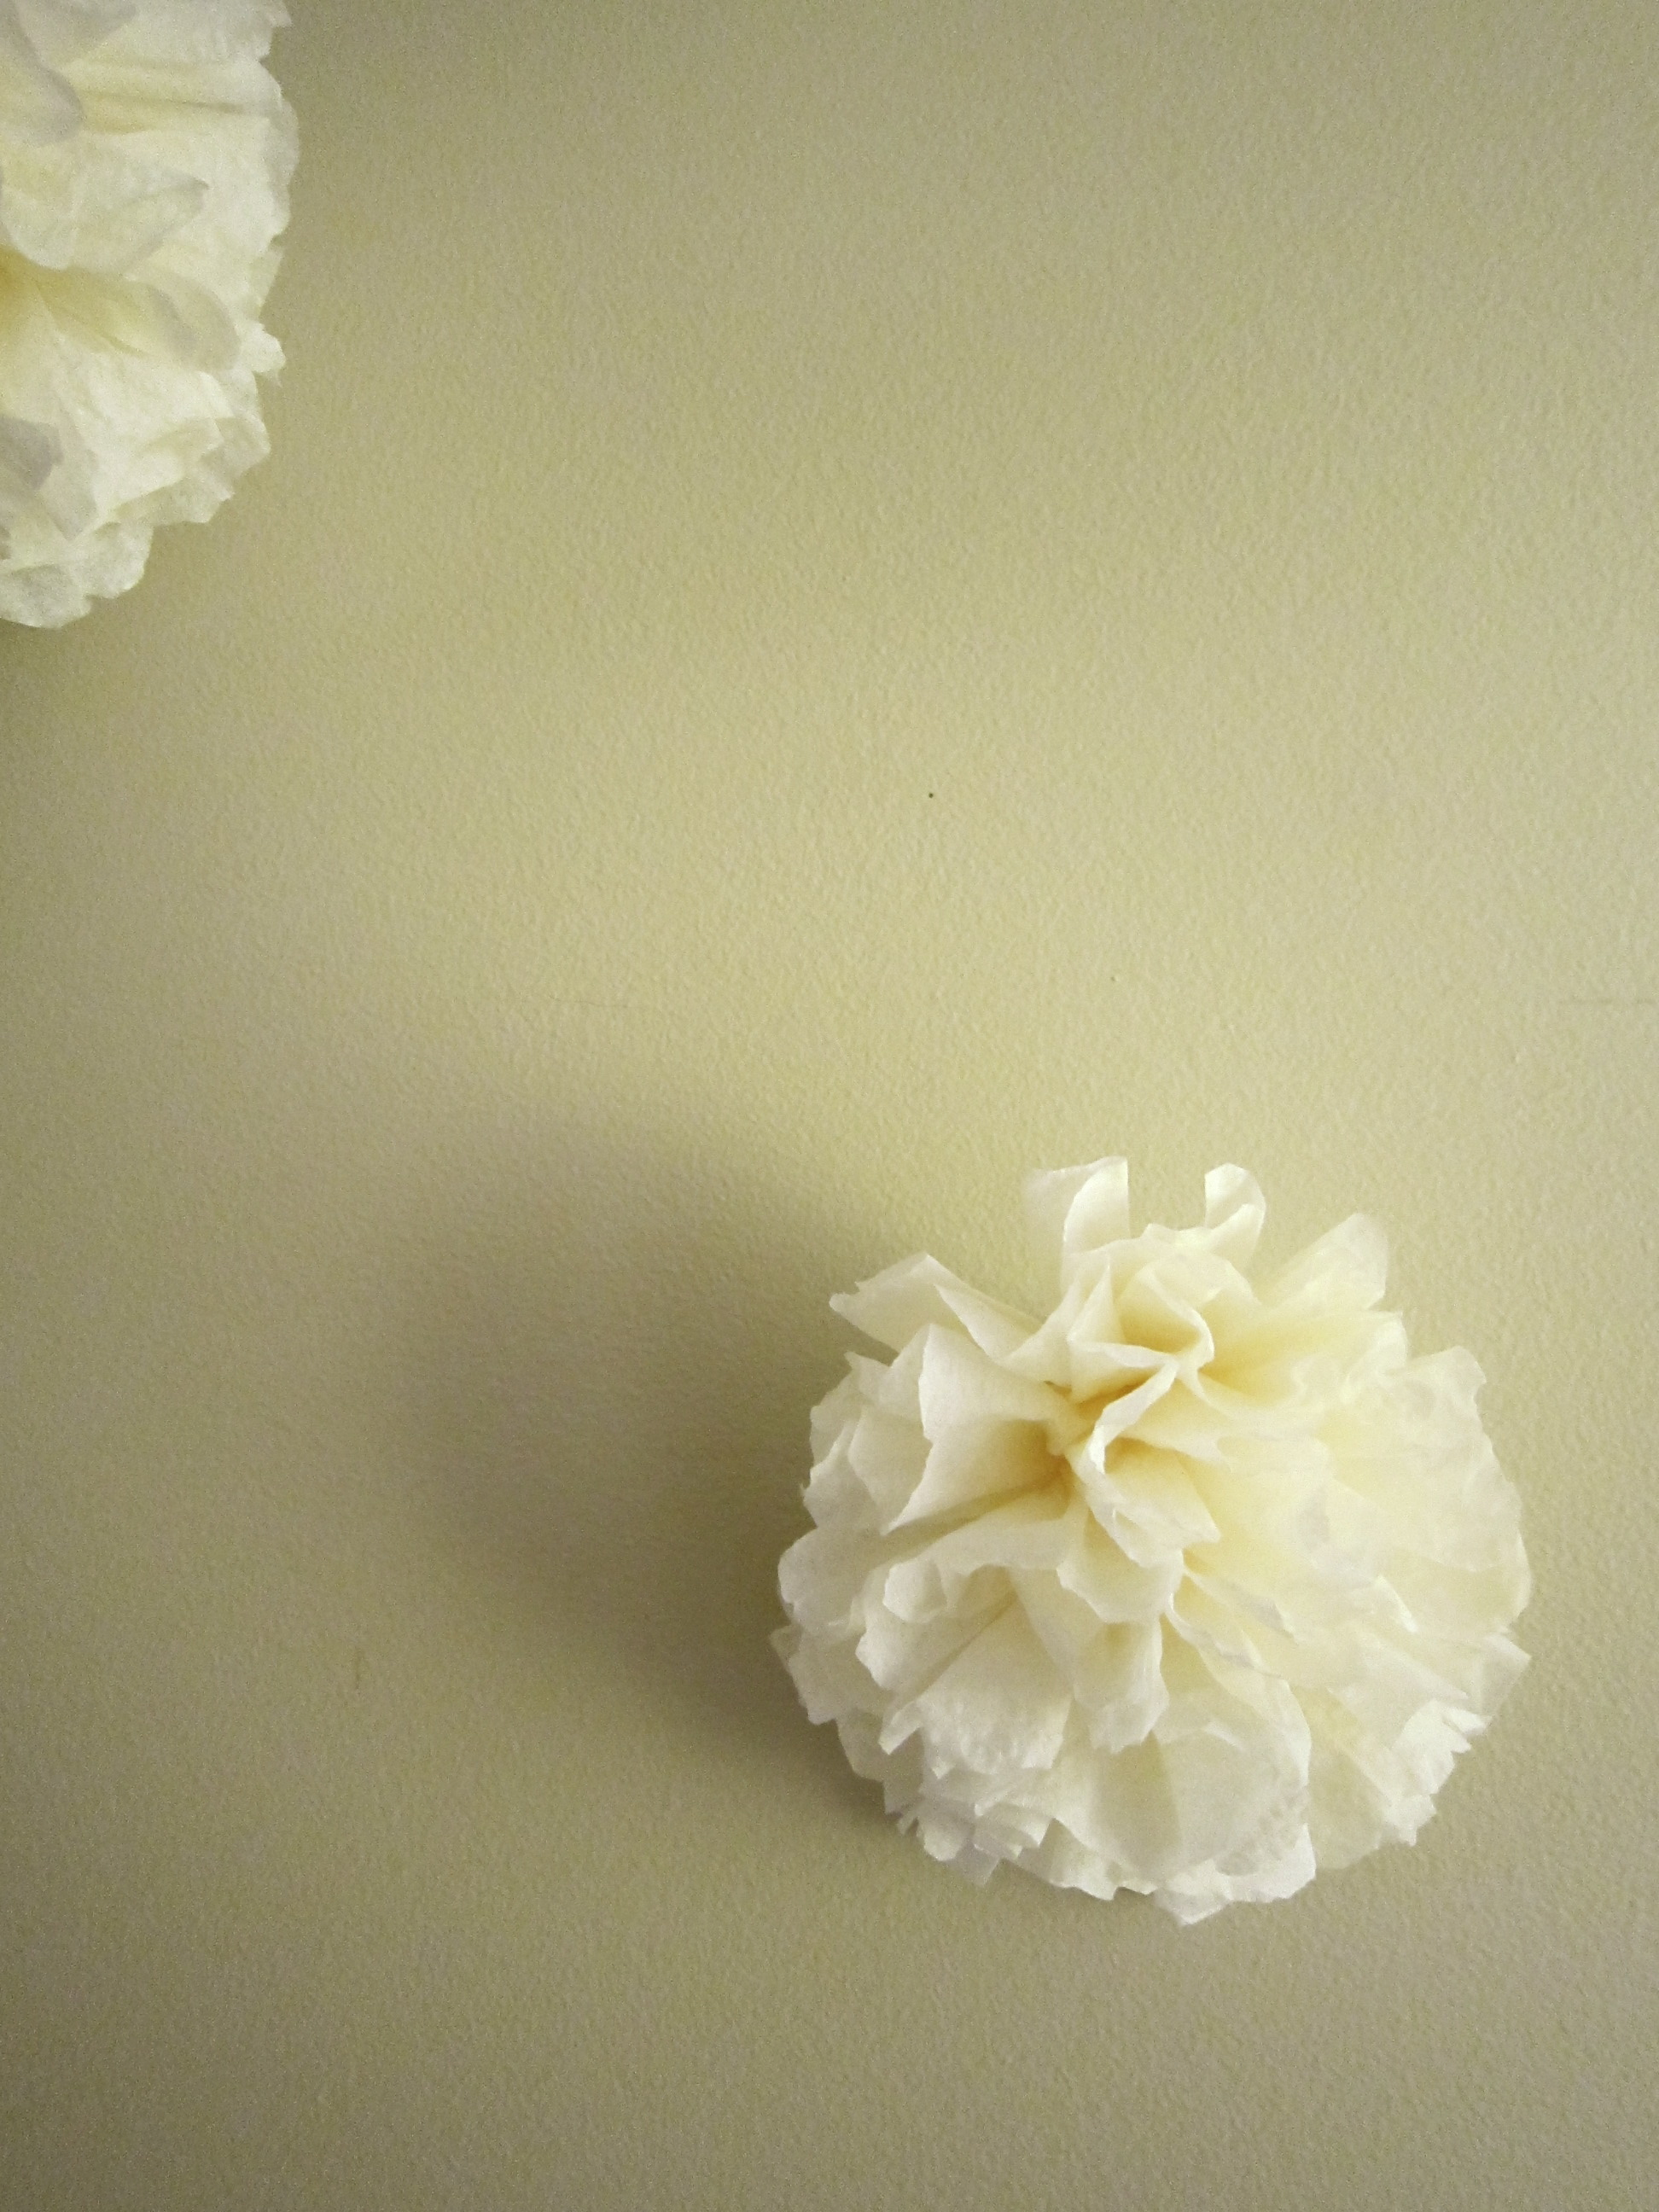 Ceremony, DIY, Reception, Flowers & Decor, Decor, Paper, white, yellow, Ceremony Flowers, Flowers, Napkin, Accent, Balls, Pom, Poms, Poof